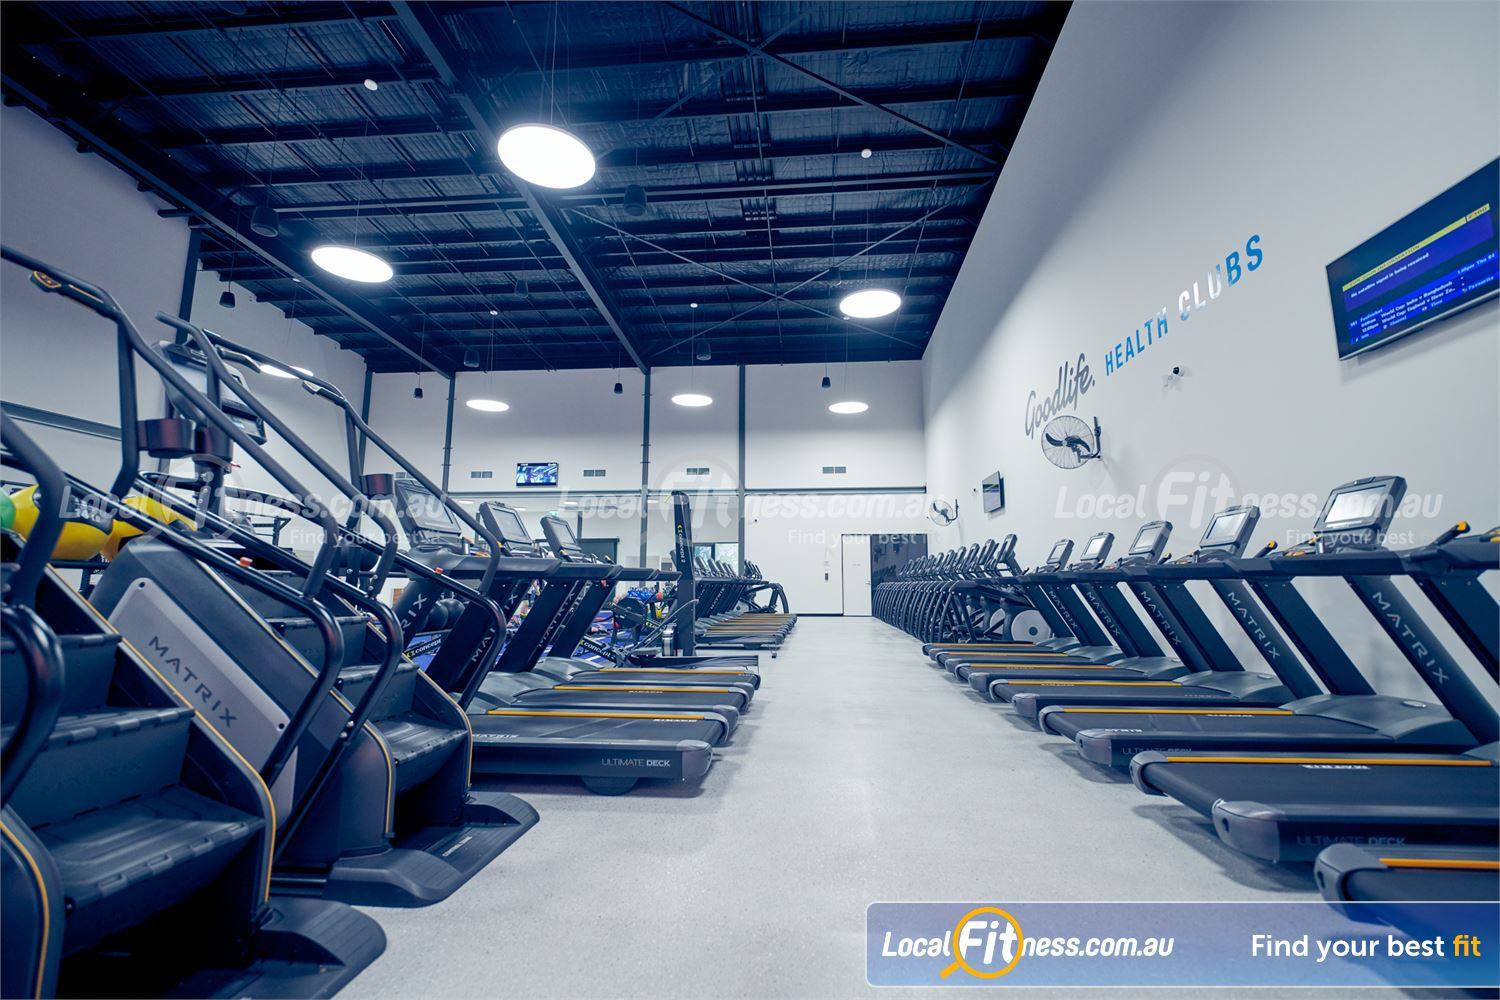 Goodlife Health Clubs Near Ringwood East All your favorite cardio is coming inc. treadmills, stair climbers, cross trainers and more.